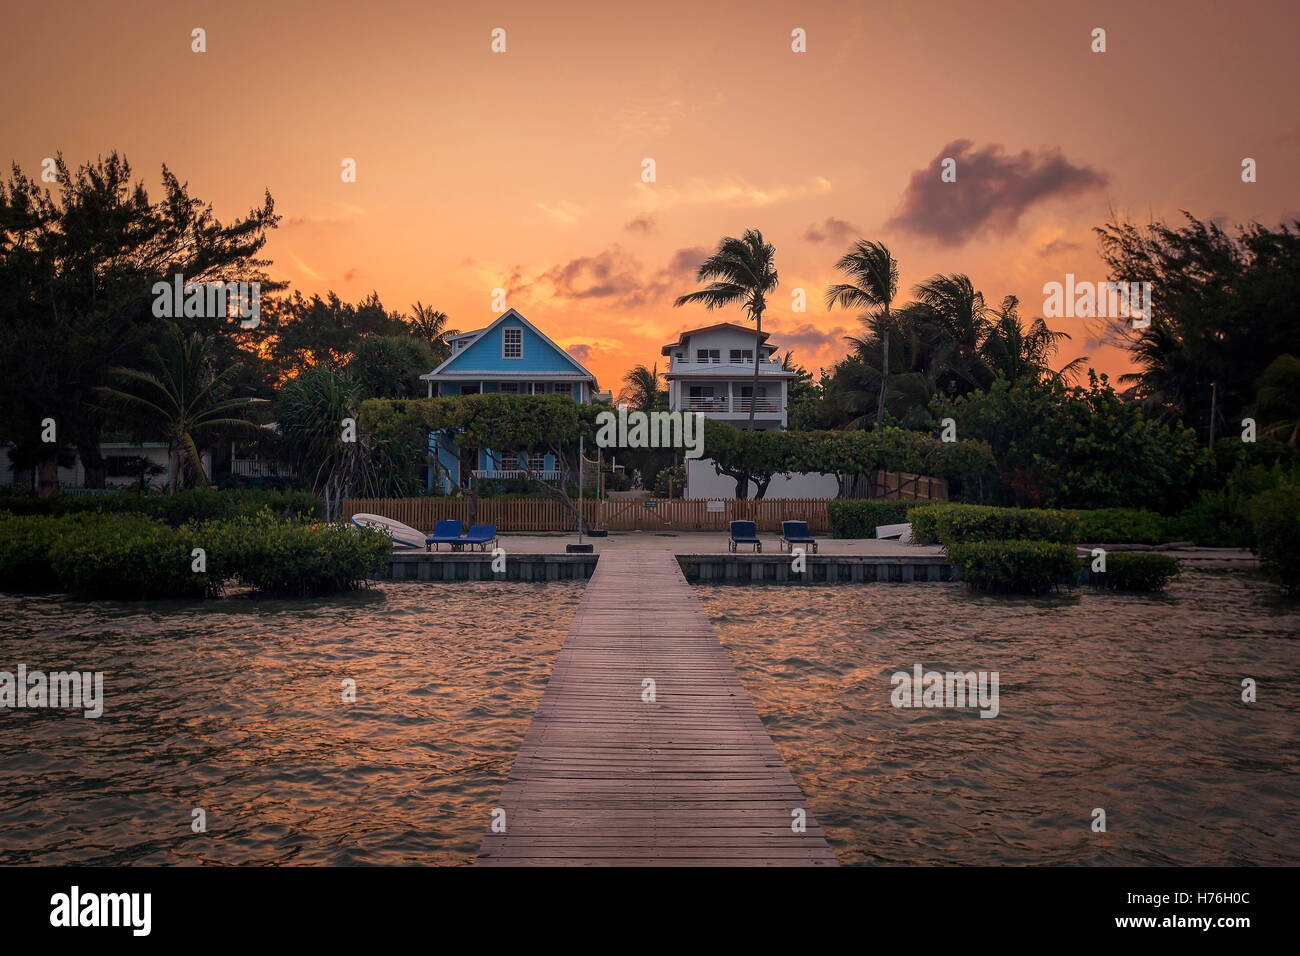 Dockside Sunset in Belize - Stock Image